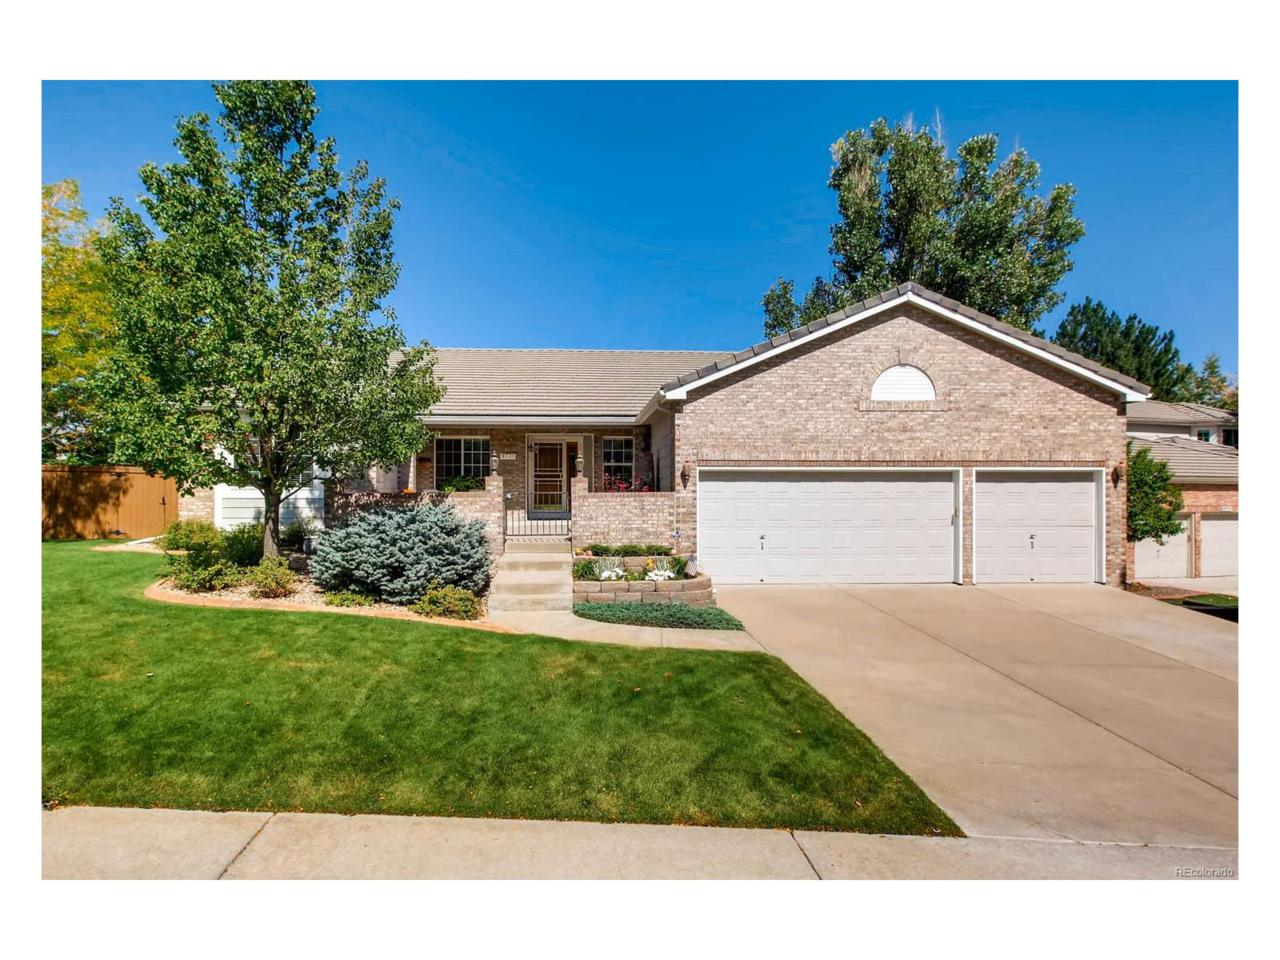 9731 Clairton Place, Highlands Ranch, CO 80126 (MLS #4268433) :: 8z Real Estate